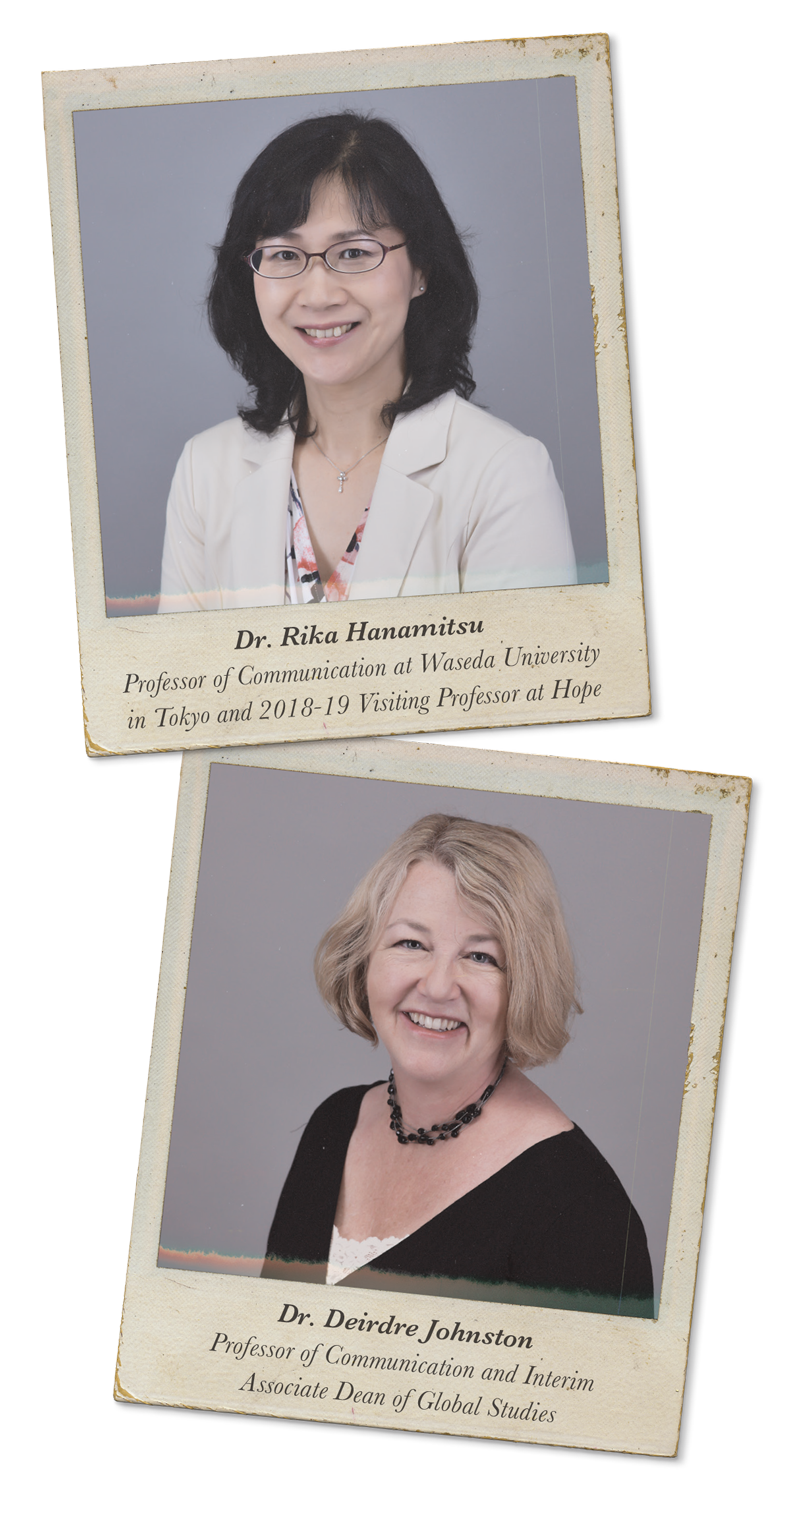 [Two women's headshots stylized to look like old polaroids] Dr. Rika Hanamitsu, Professor of Communication at Waseda University in Tokyo and 2018-19 Visiting Professor at Hope. Dr. Deirdre Johnston, Professor of Communication and Interim Associate Dean of Global Studies.